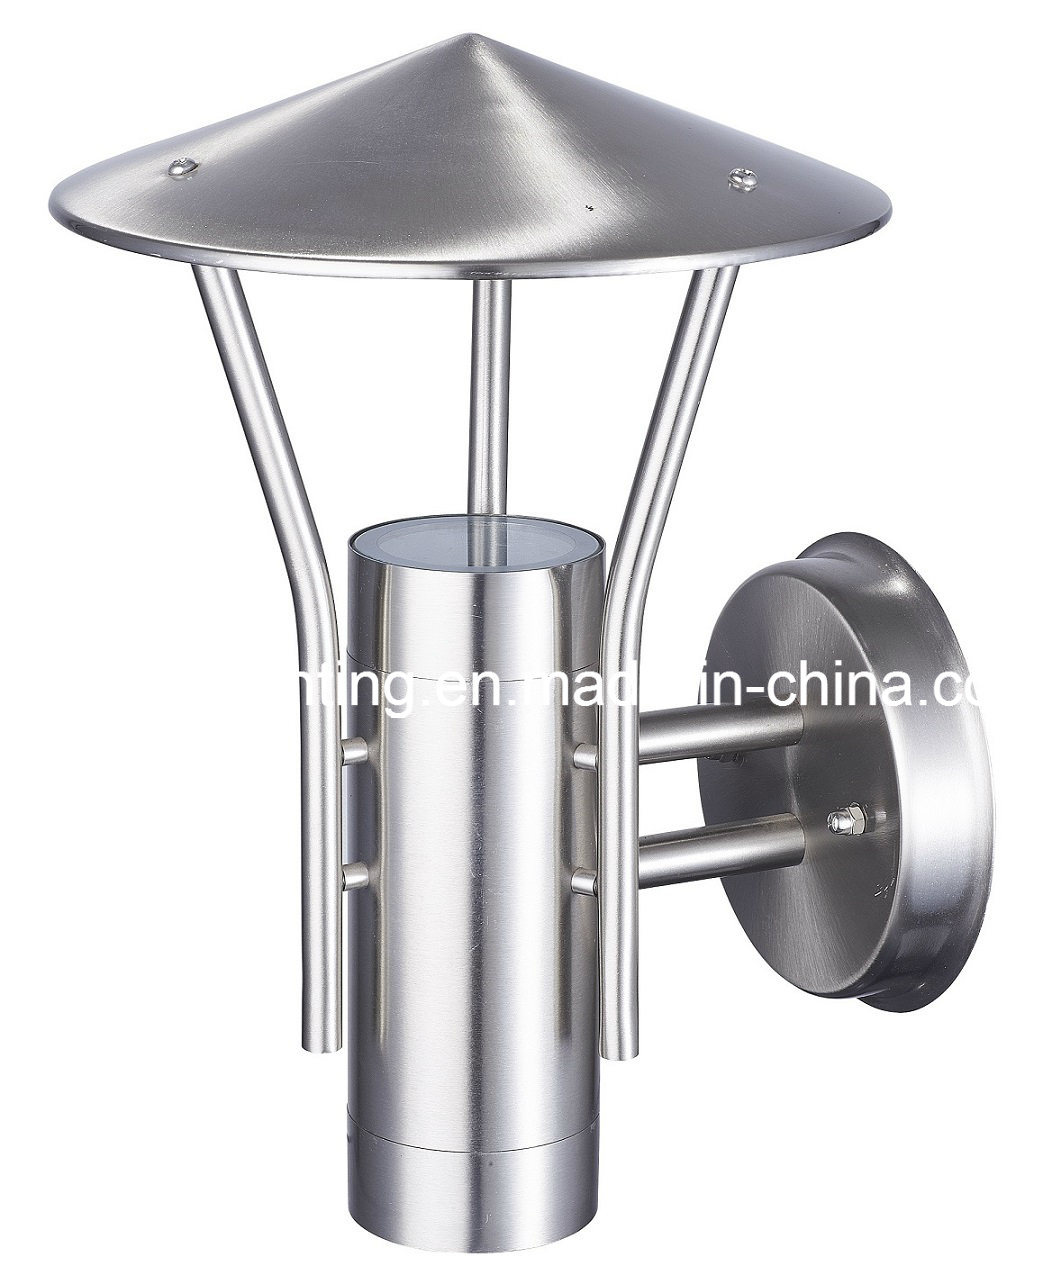 GU10 European Style Outdoor Light with Ce Certificate (5031A)